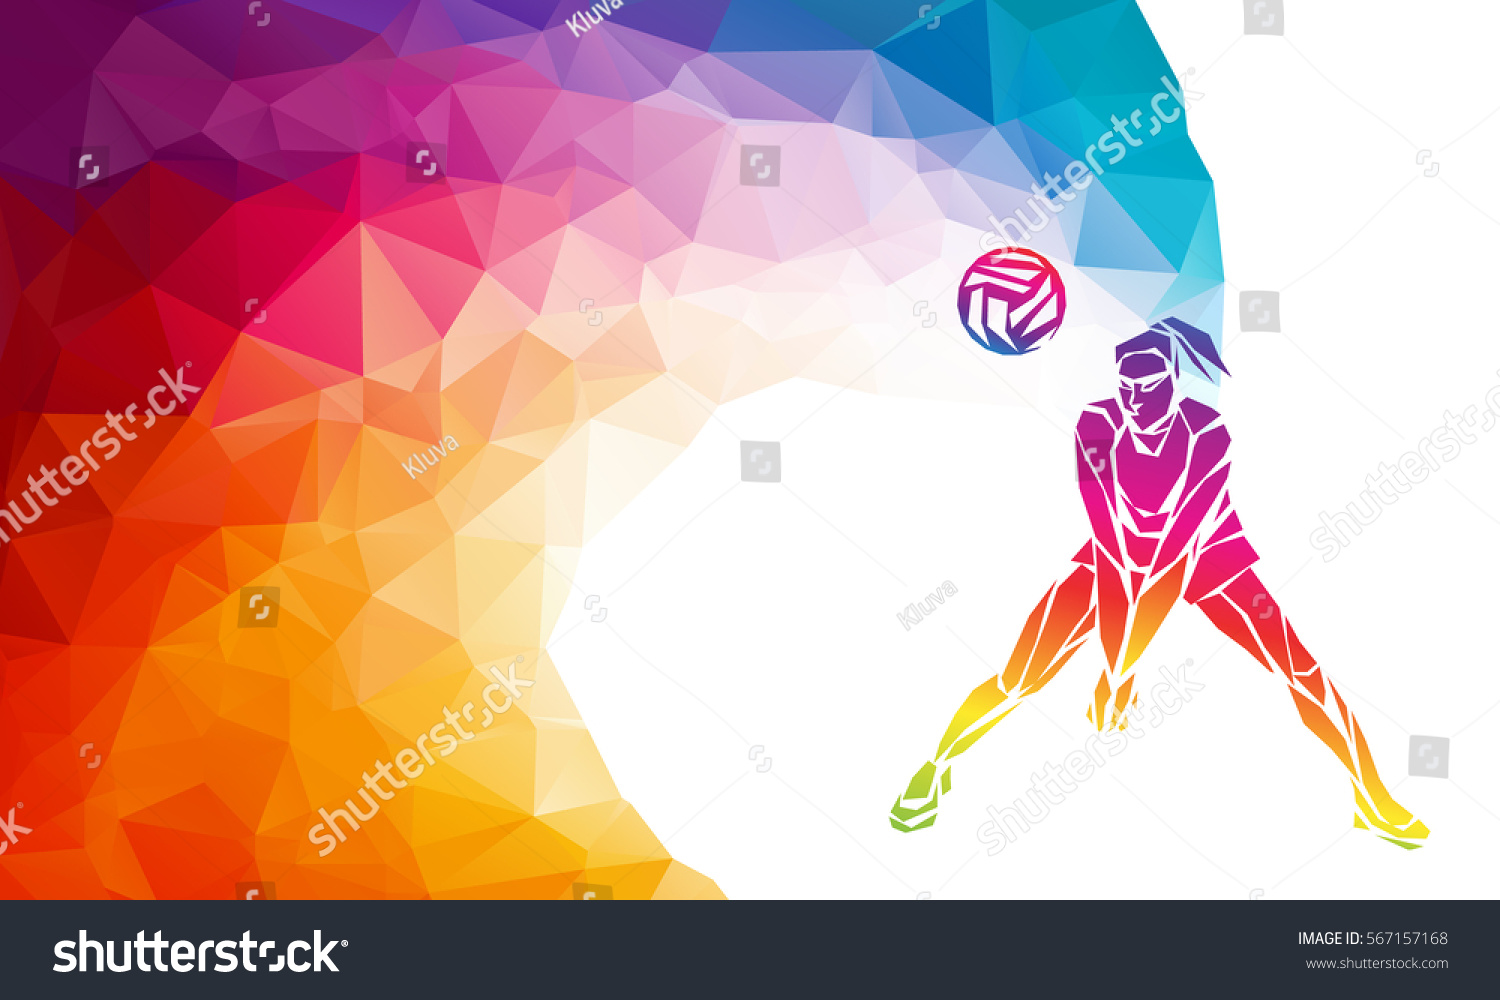 Illustration Abstract Volleyball Player Silhouette: Creative Silhouette Volleyball Player Receiving Ball Stock